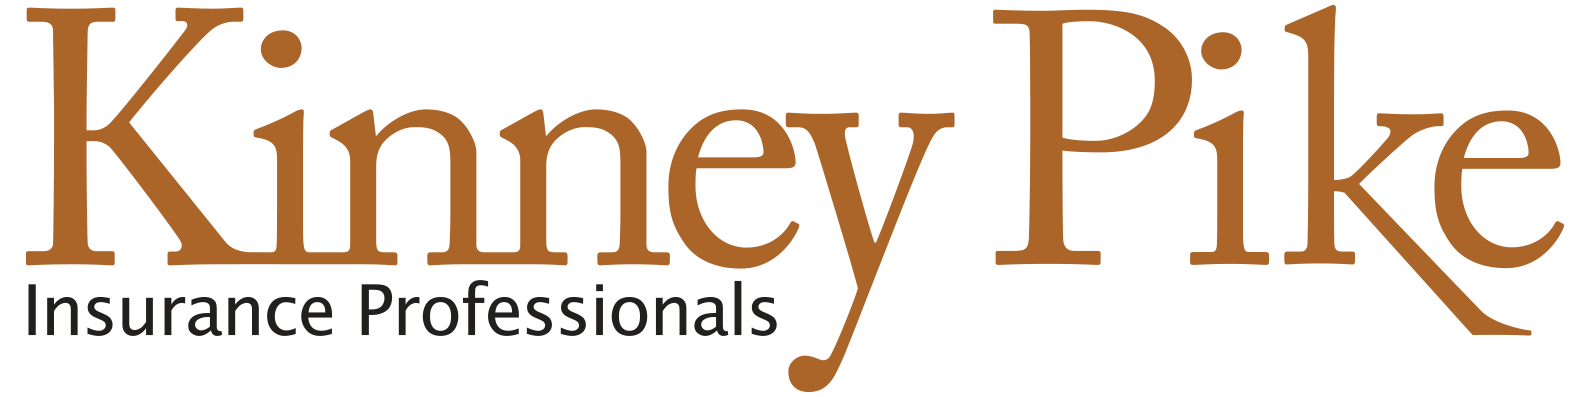 Kinney Pike Insurance